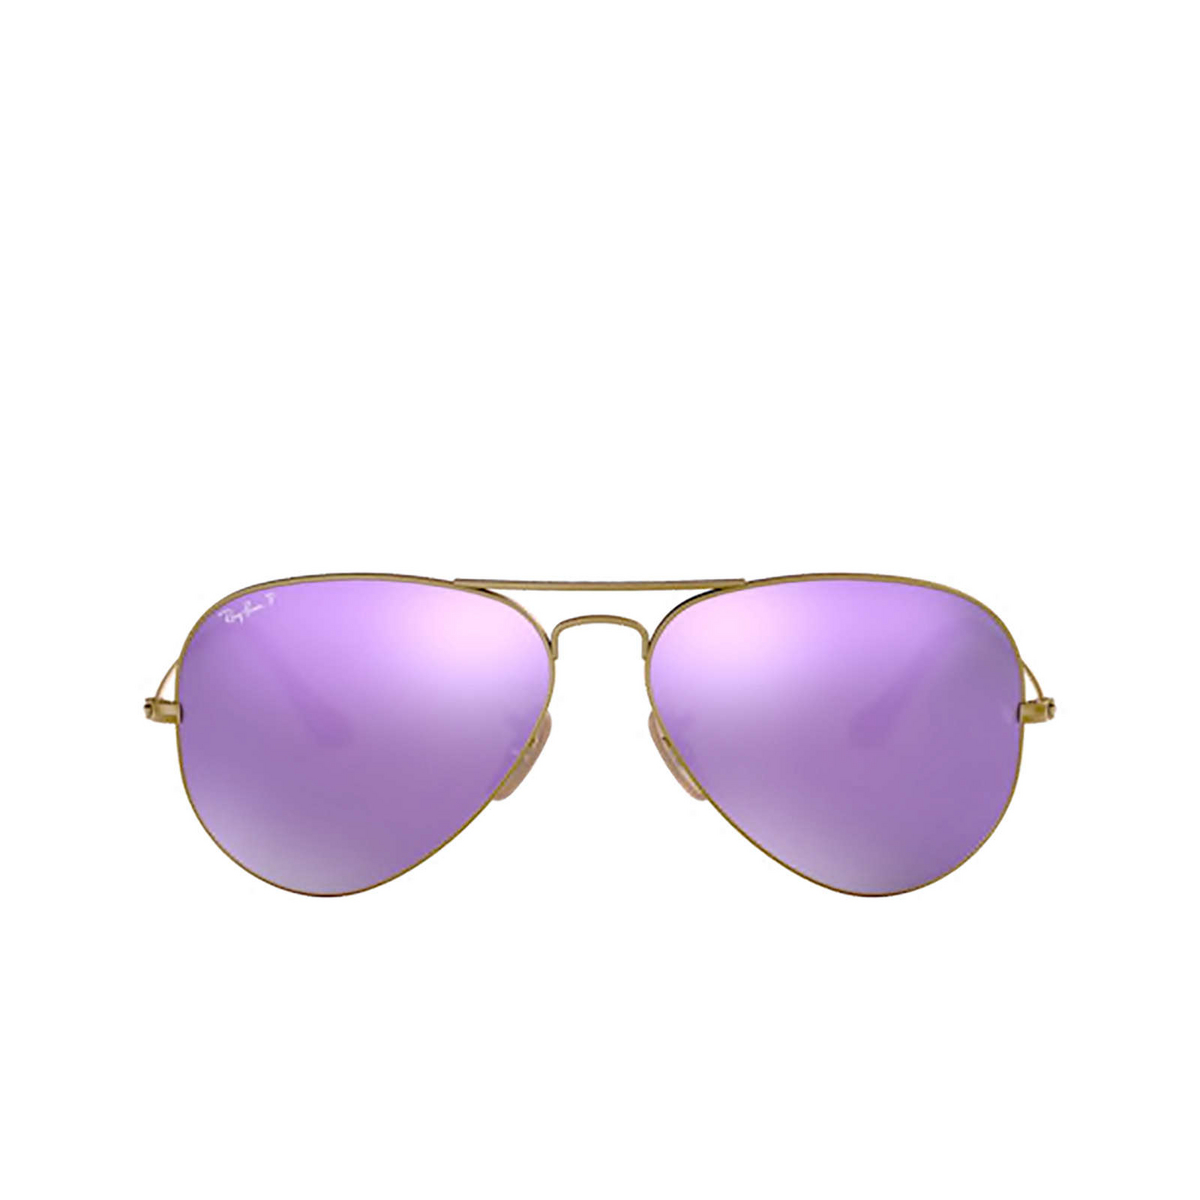 Ray-Ban® Aviator Sunglasses: Aviator Large Metal RB3025 color Demi Gloss Brushed Bronze 167/1R - front view.